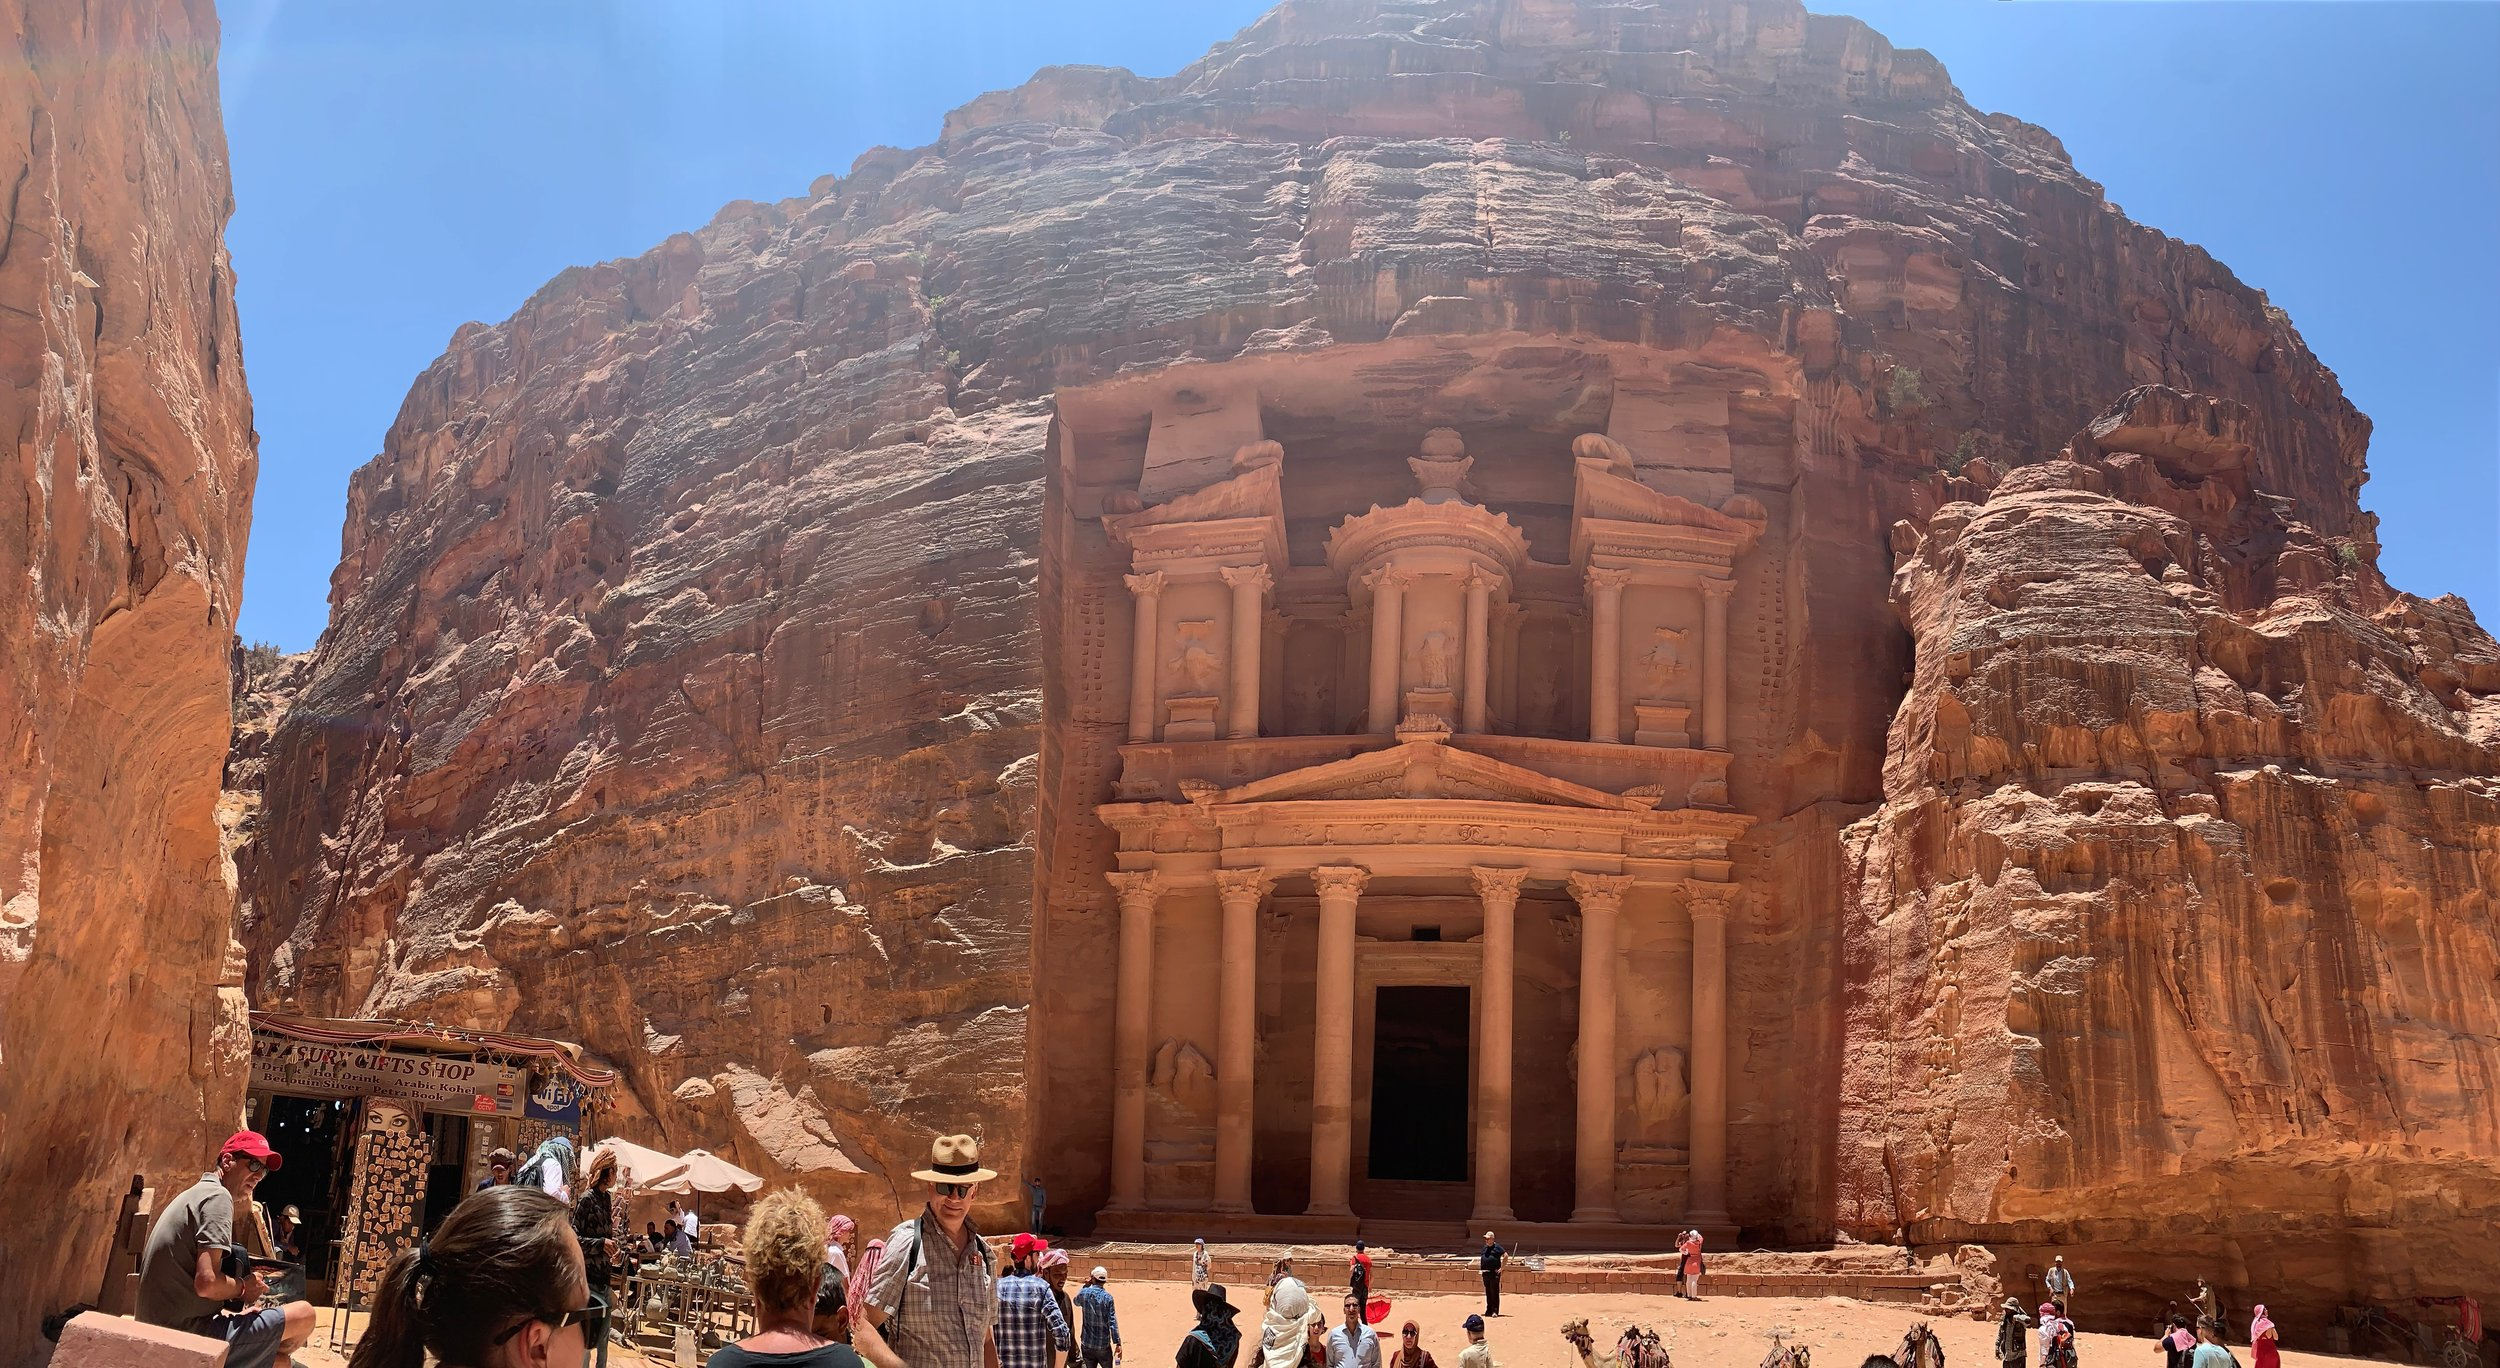 A trip to Petra isn't complete without a picture of the  Khazneh , more commonly called the Treasury. Photo credit: Russo, 2019